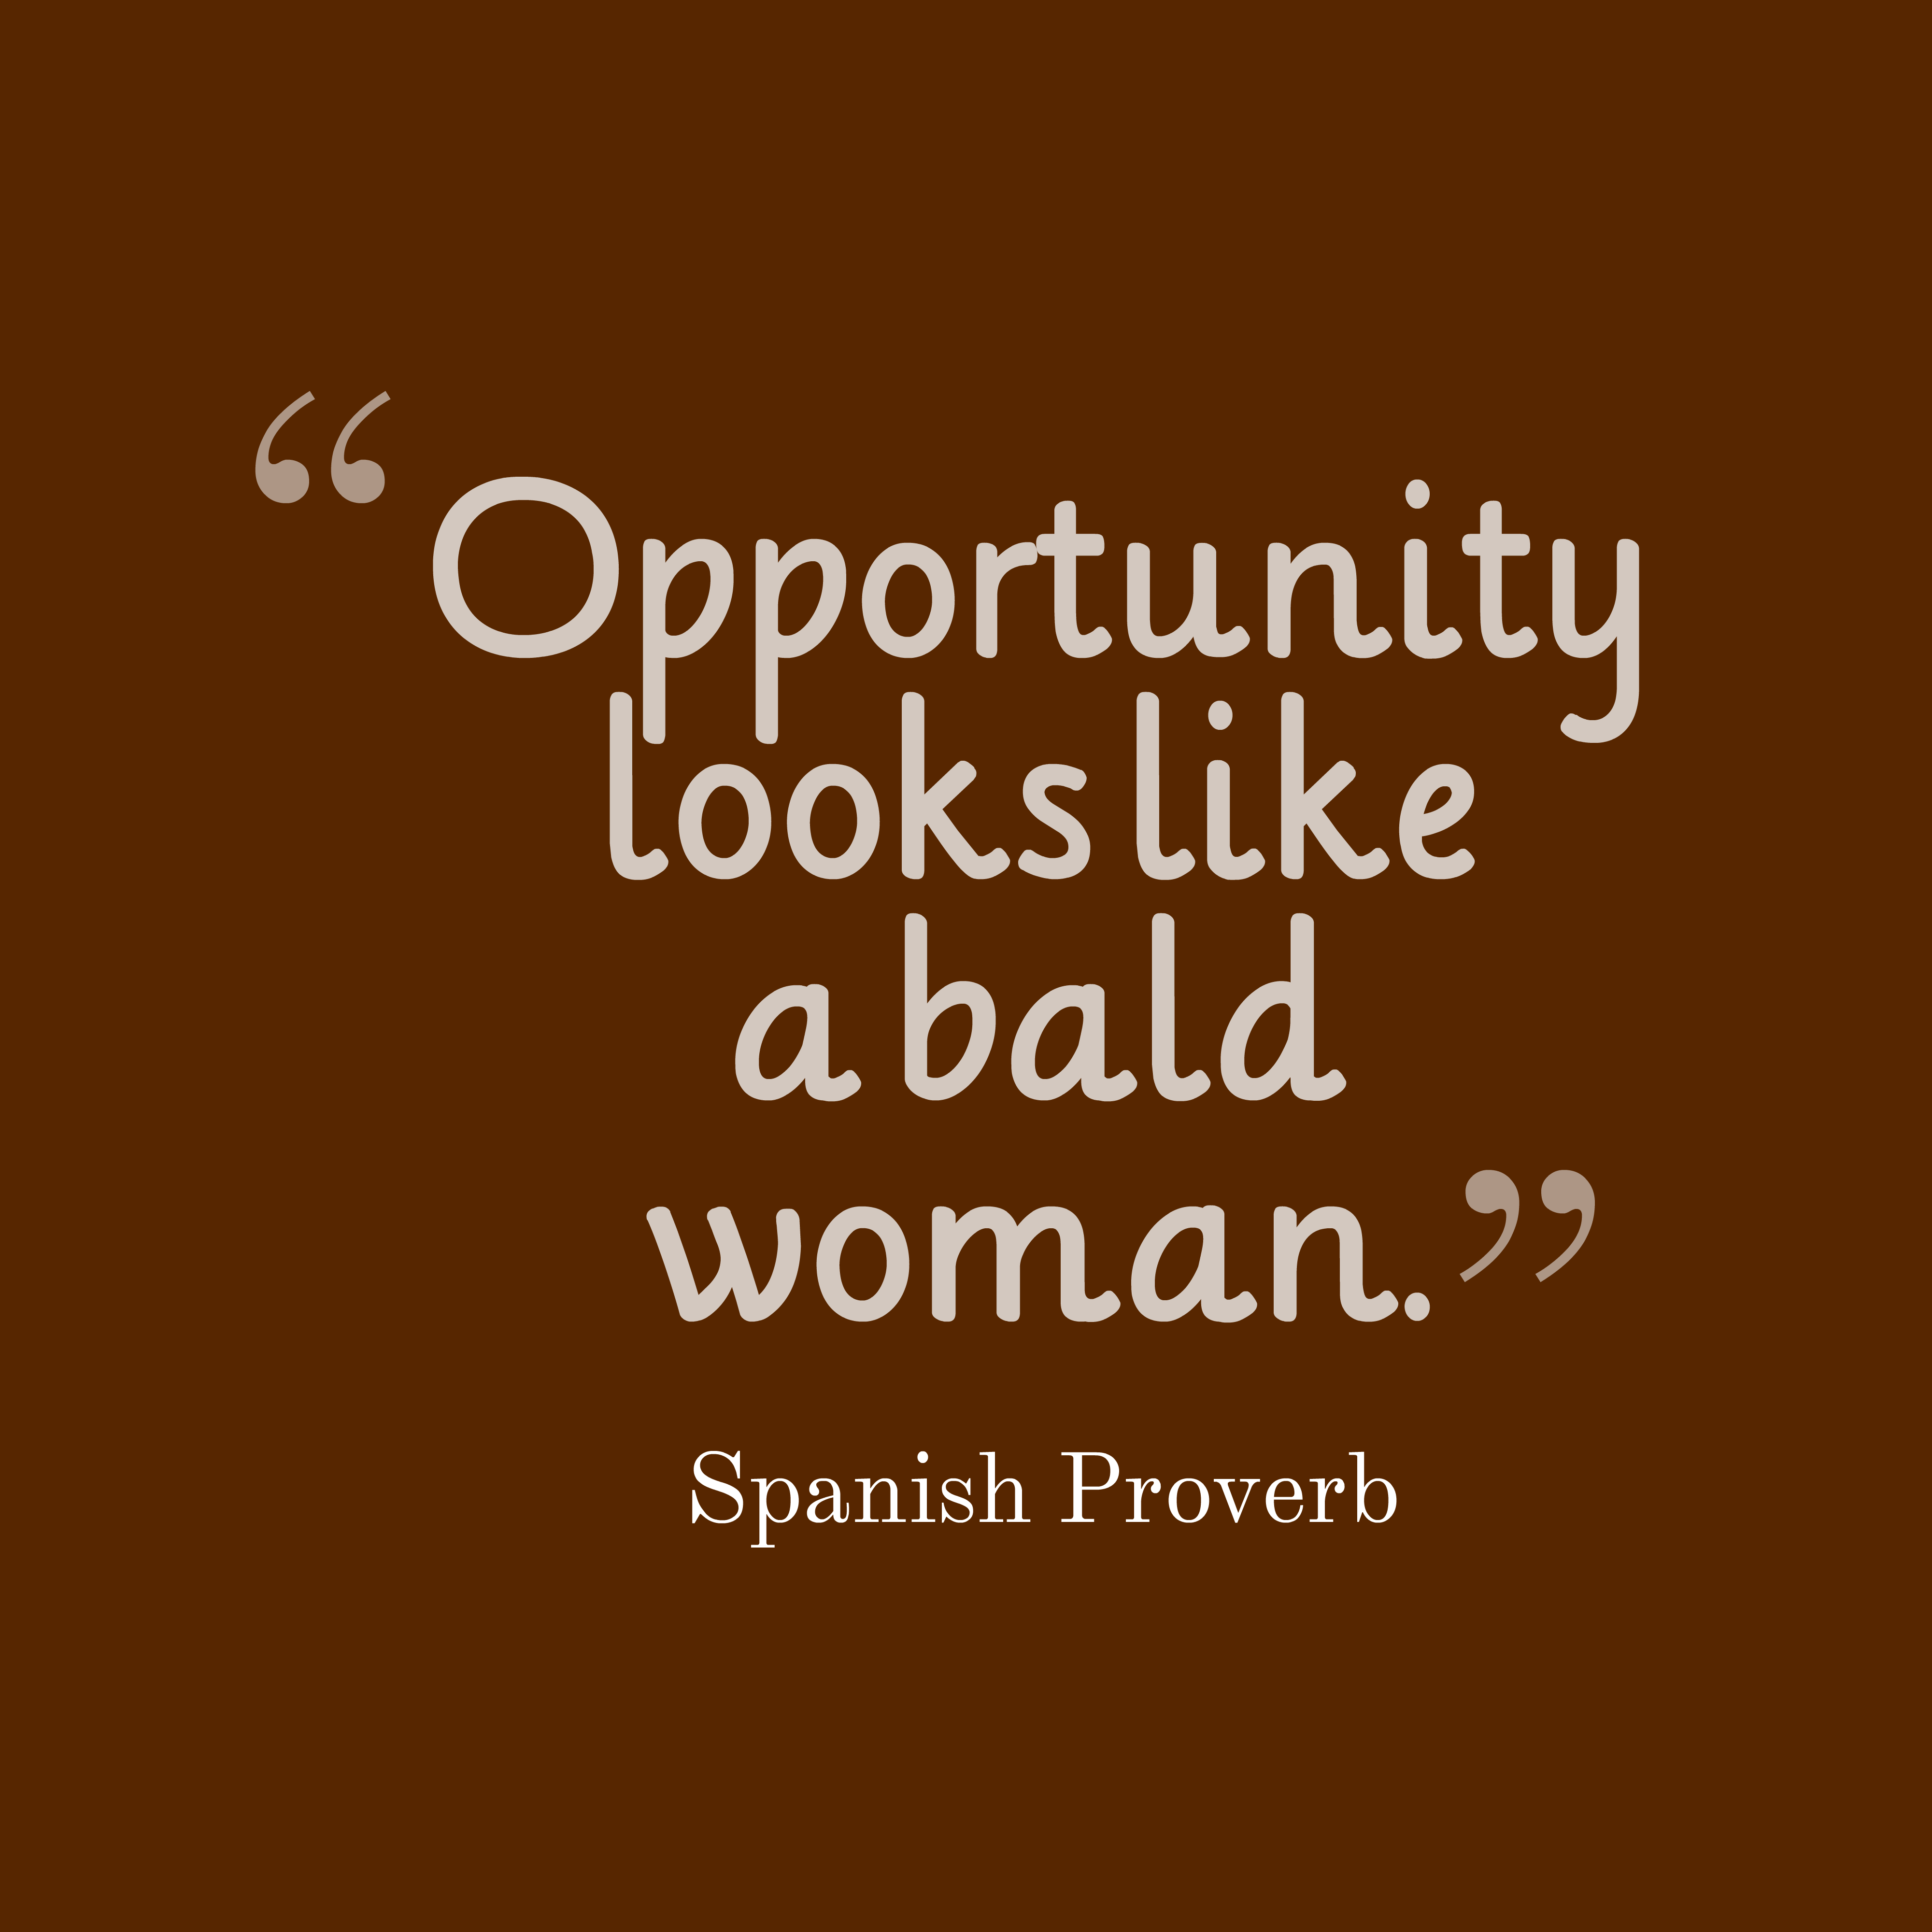 Picture » Span8sh proverb about opportunity.